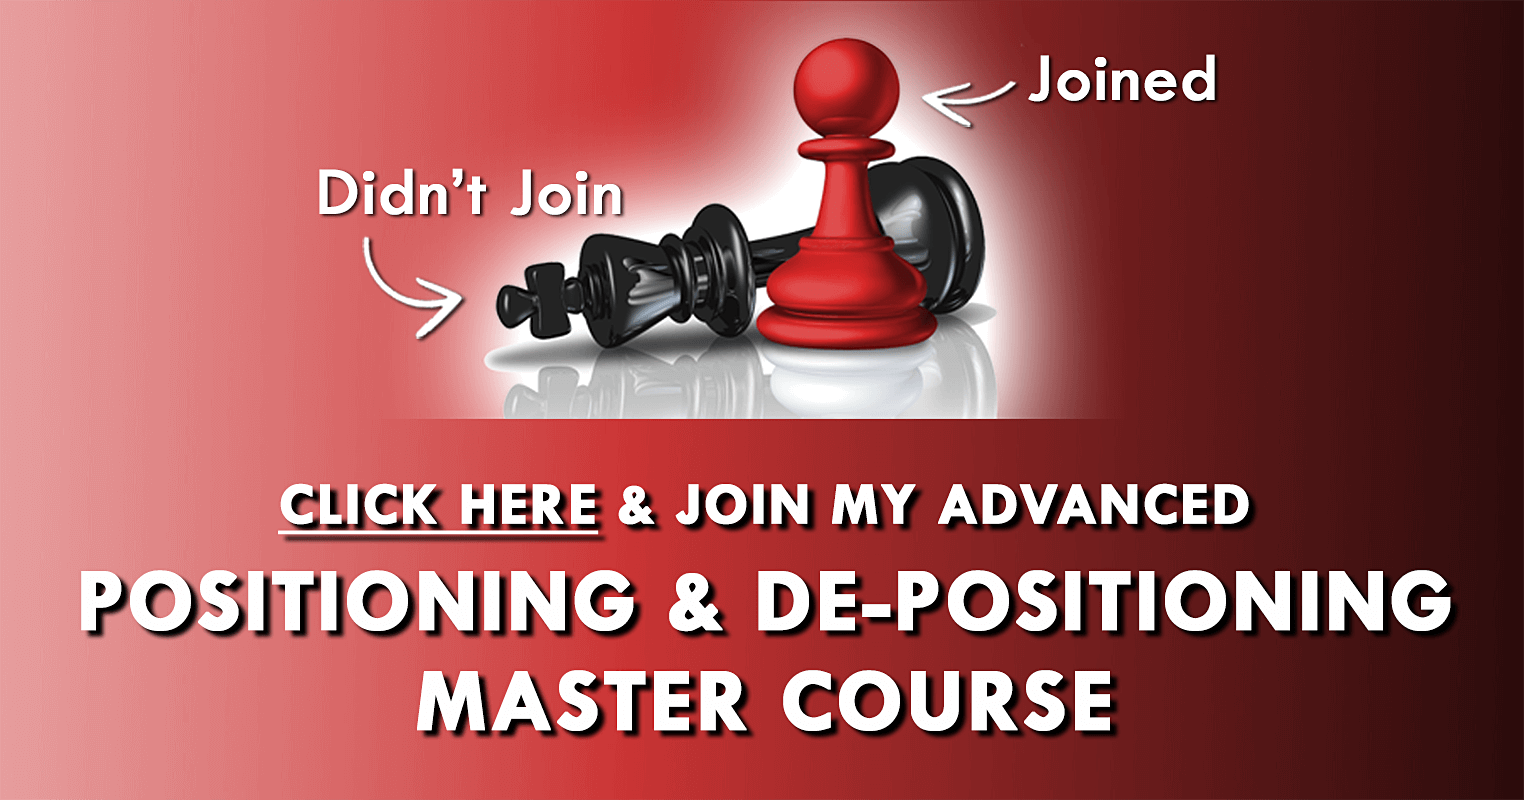 Join Marty Marion's Advanced Positioning Master Course